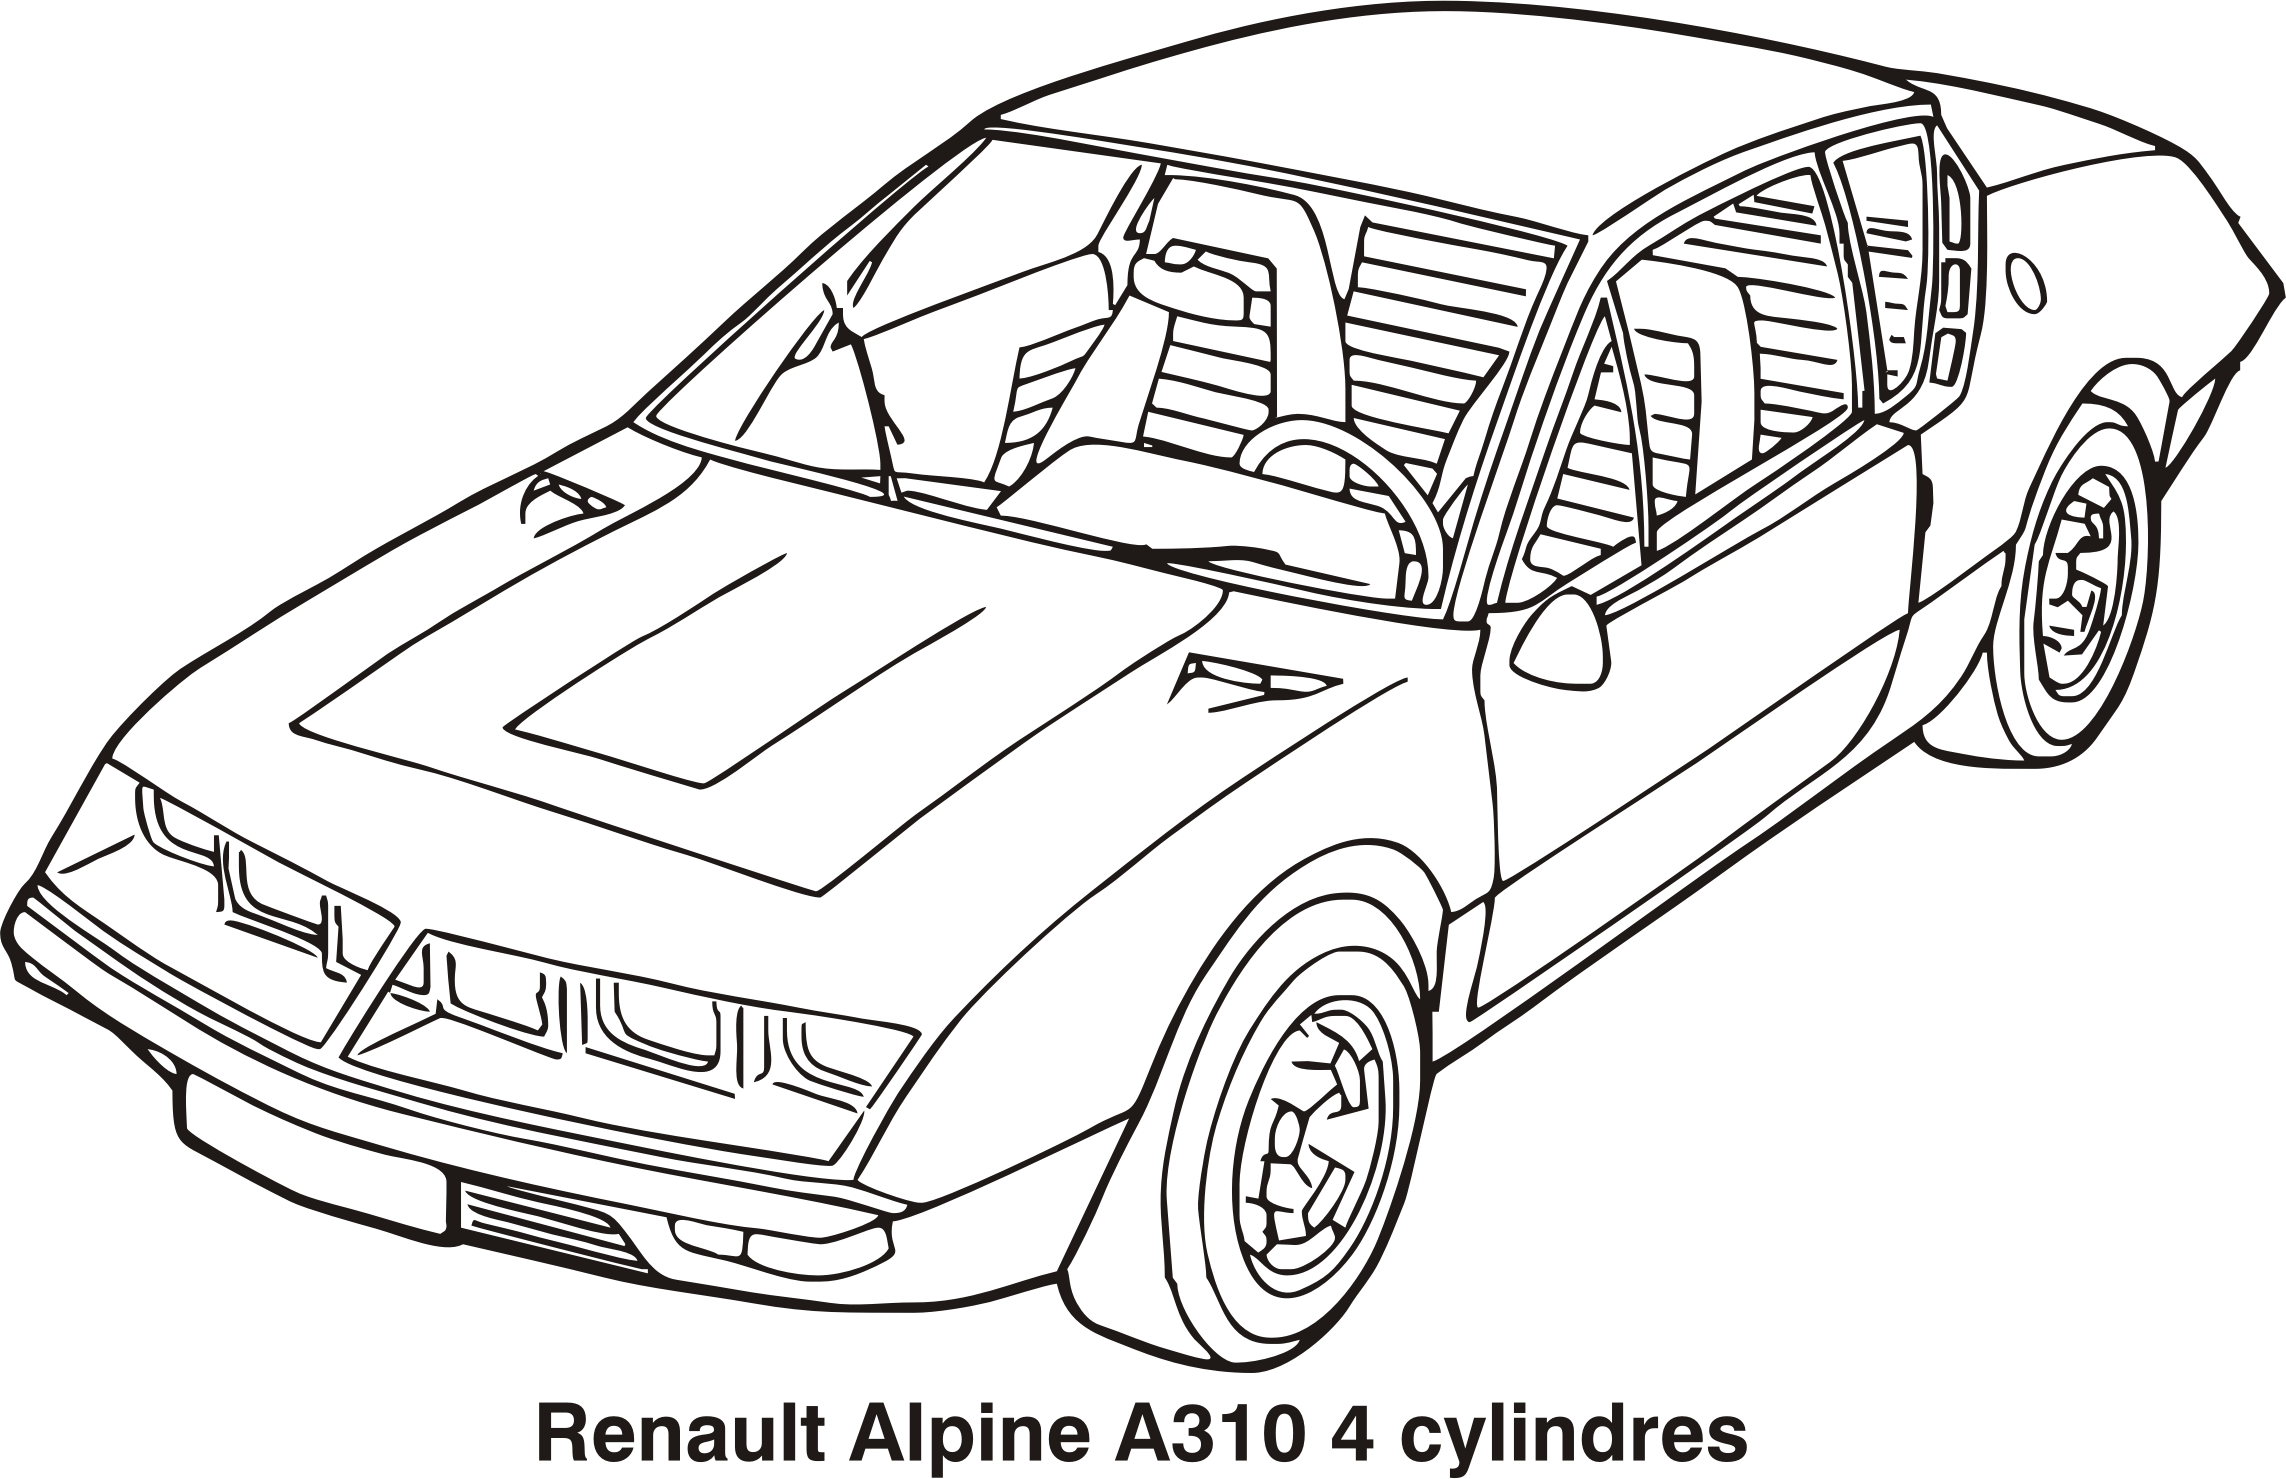 Renault Alpine A310 4 cylindres, year 1972 by Vanja